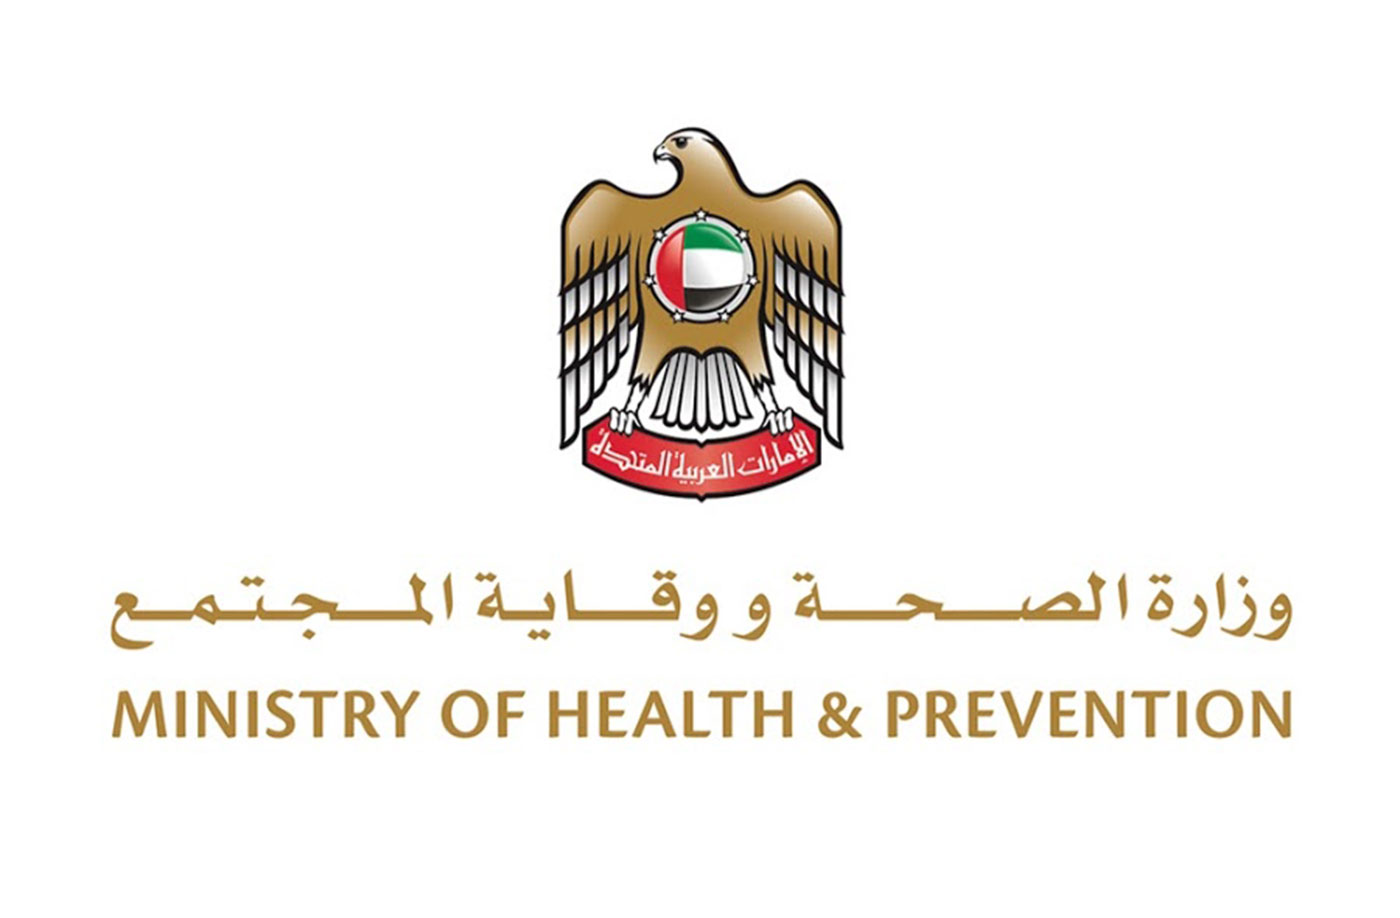 UAE announces 3,525 new COVID-19 cases, 3,734 recoveries, 18 deaths in last 24 hours